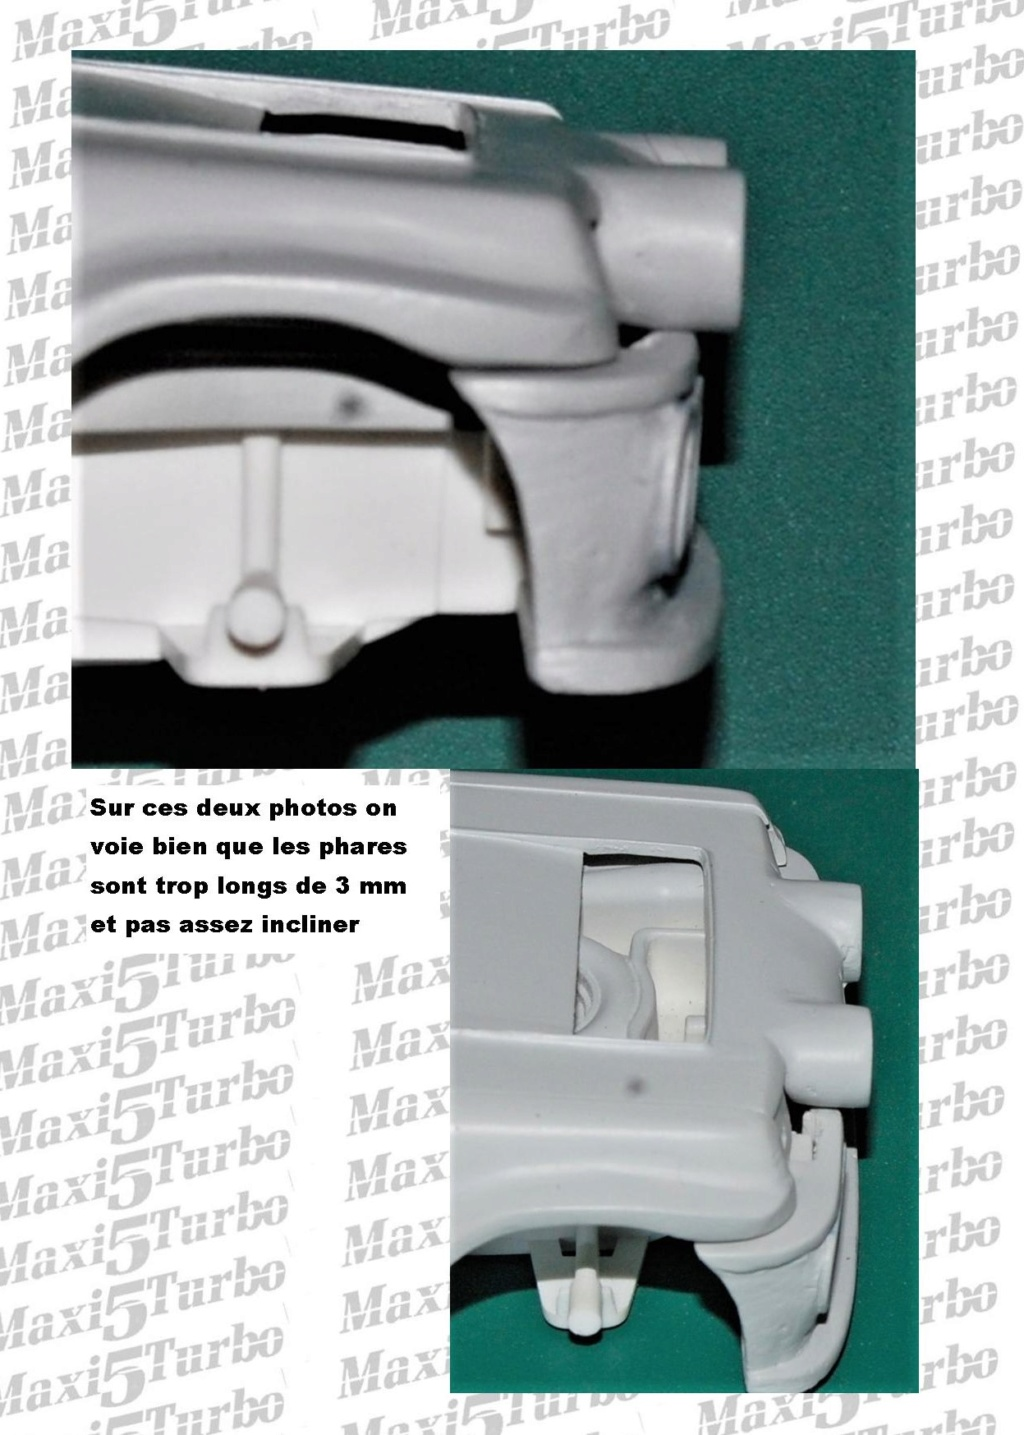 (1/24) Renault 5 Maxi turbo Ref 80717 ( Hors delai ) - Page 5 5810